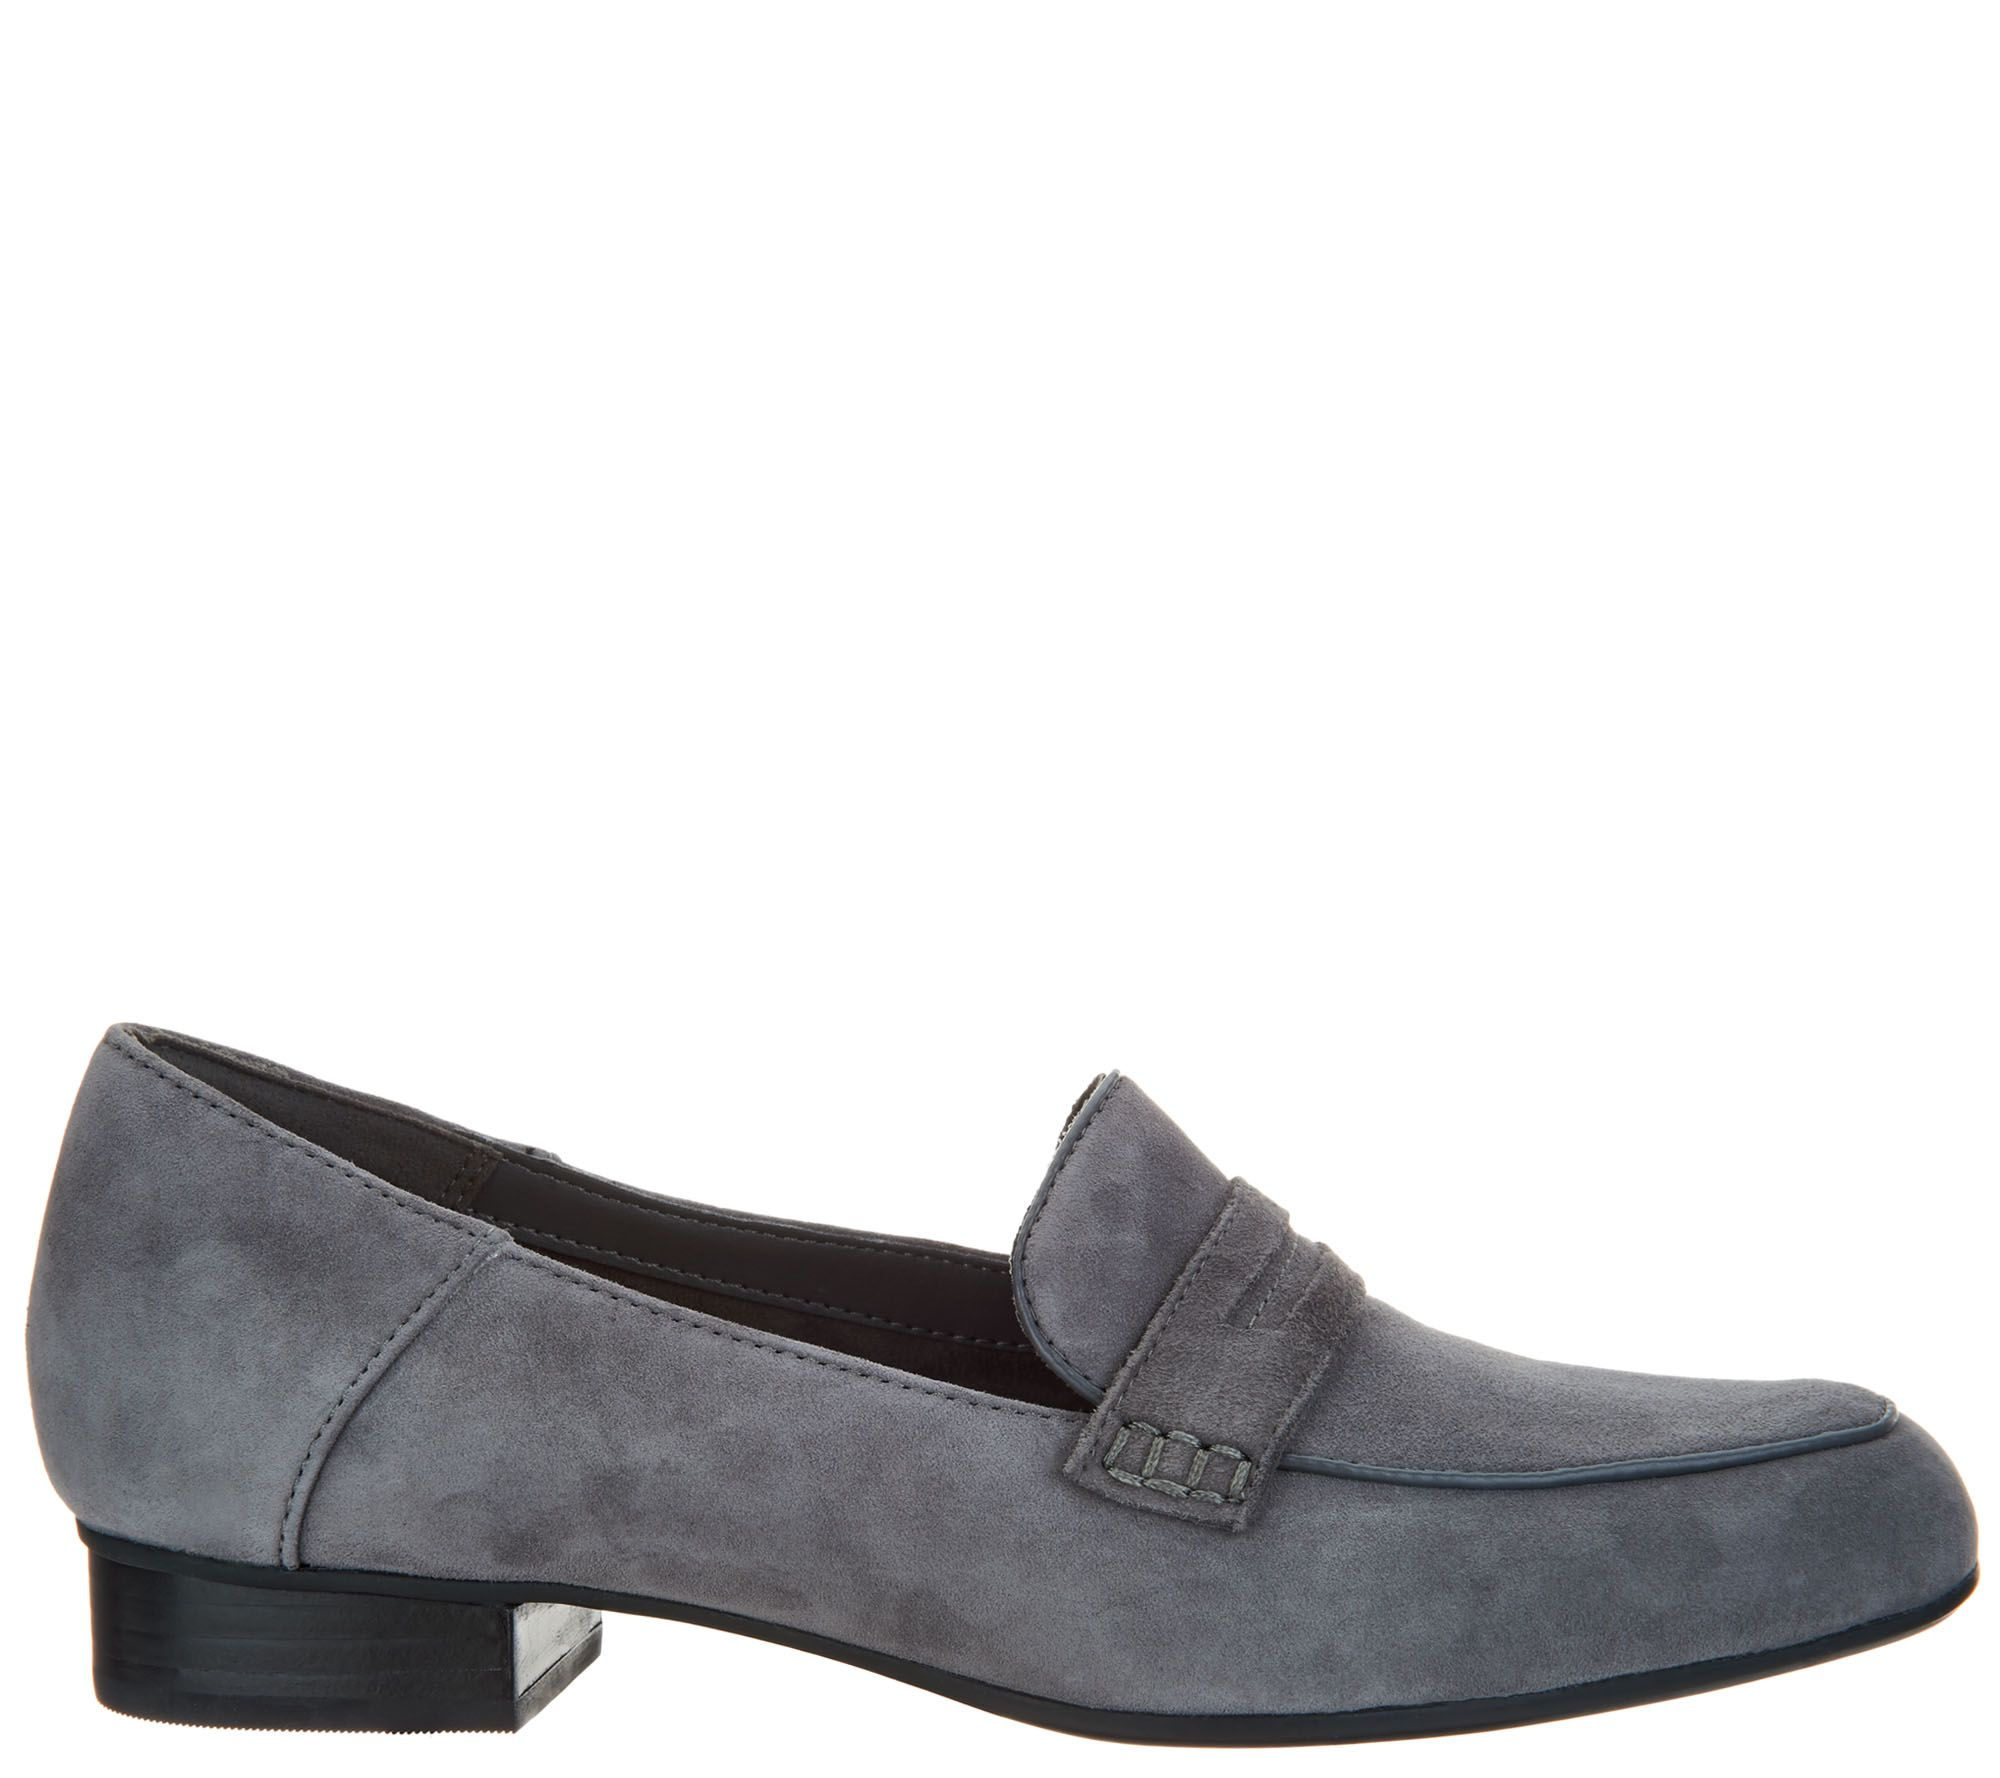 9db5db6f584 Clarks Artisan Suede Heeled Loafers - Keesha Cora - Page 1 — QVC.com